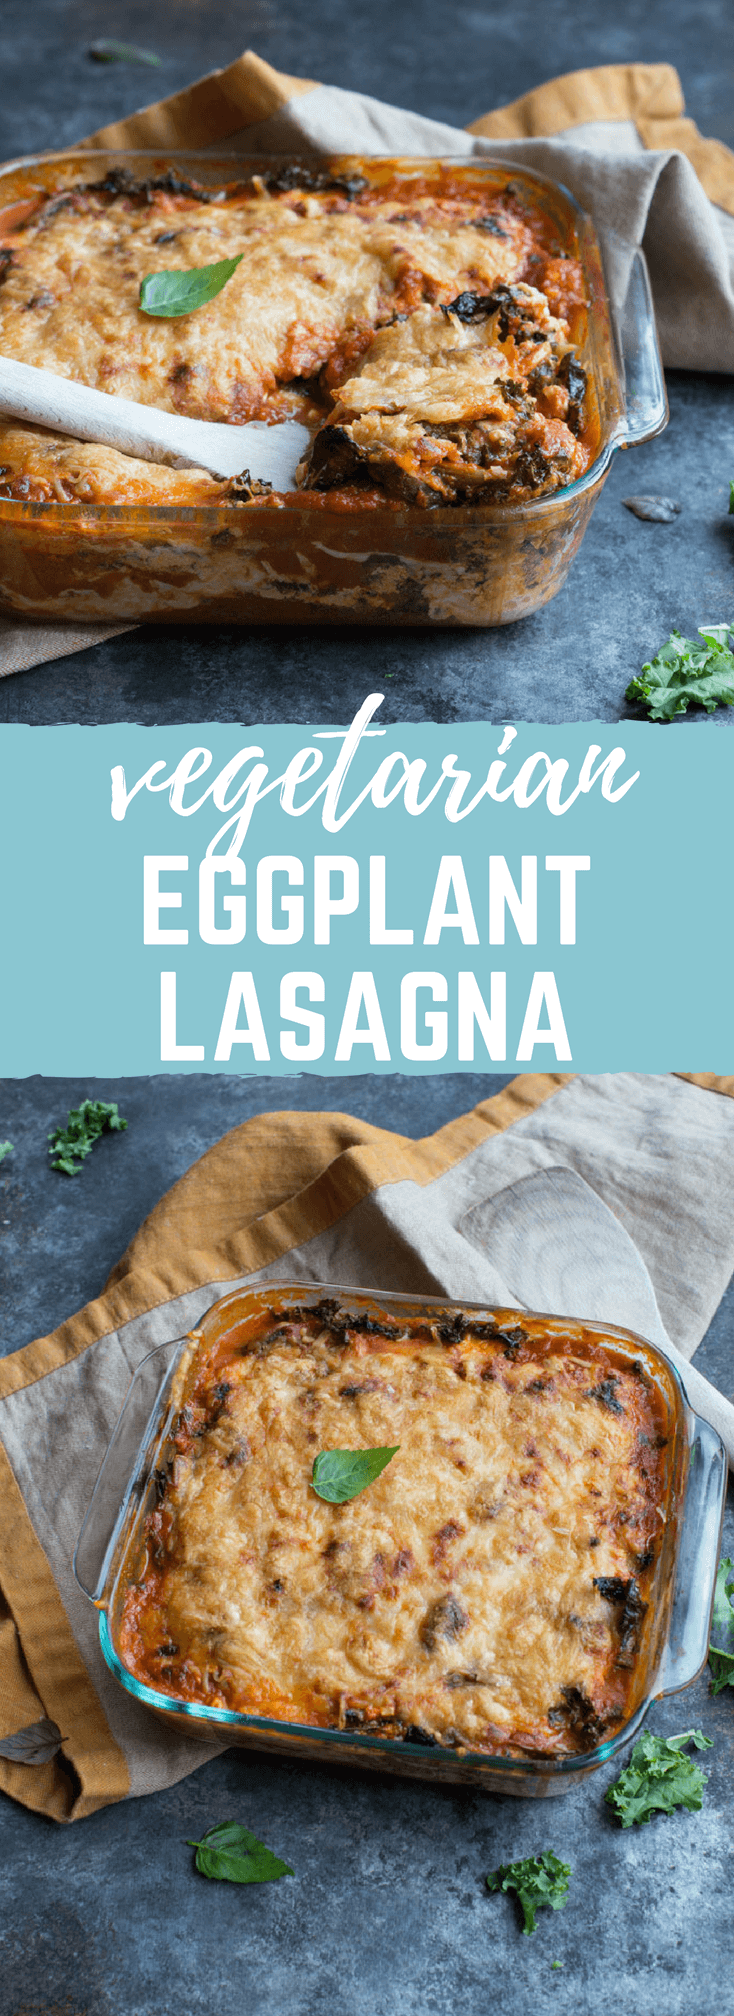 Vegetarian Roasted Eggplant Lasagna | high protein vegetarian dinner